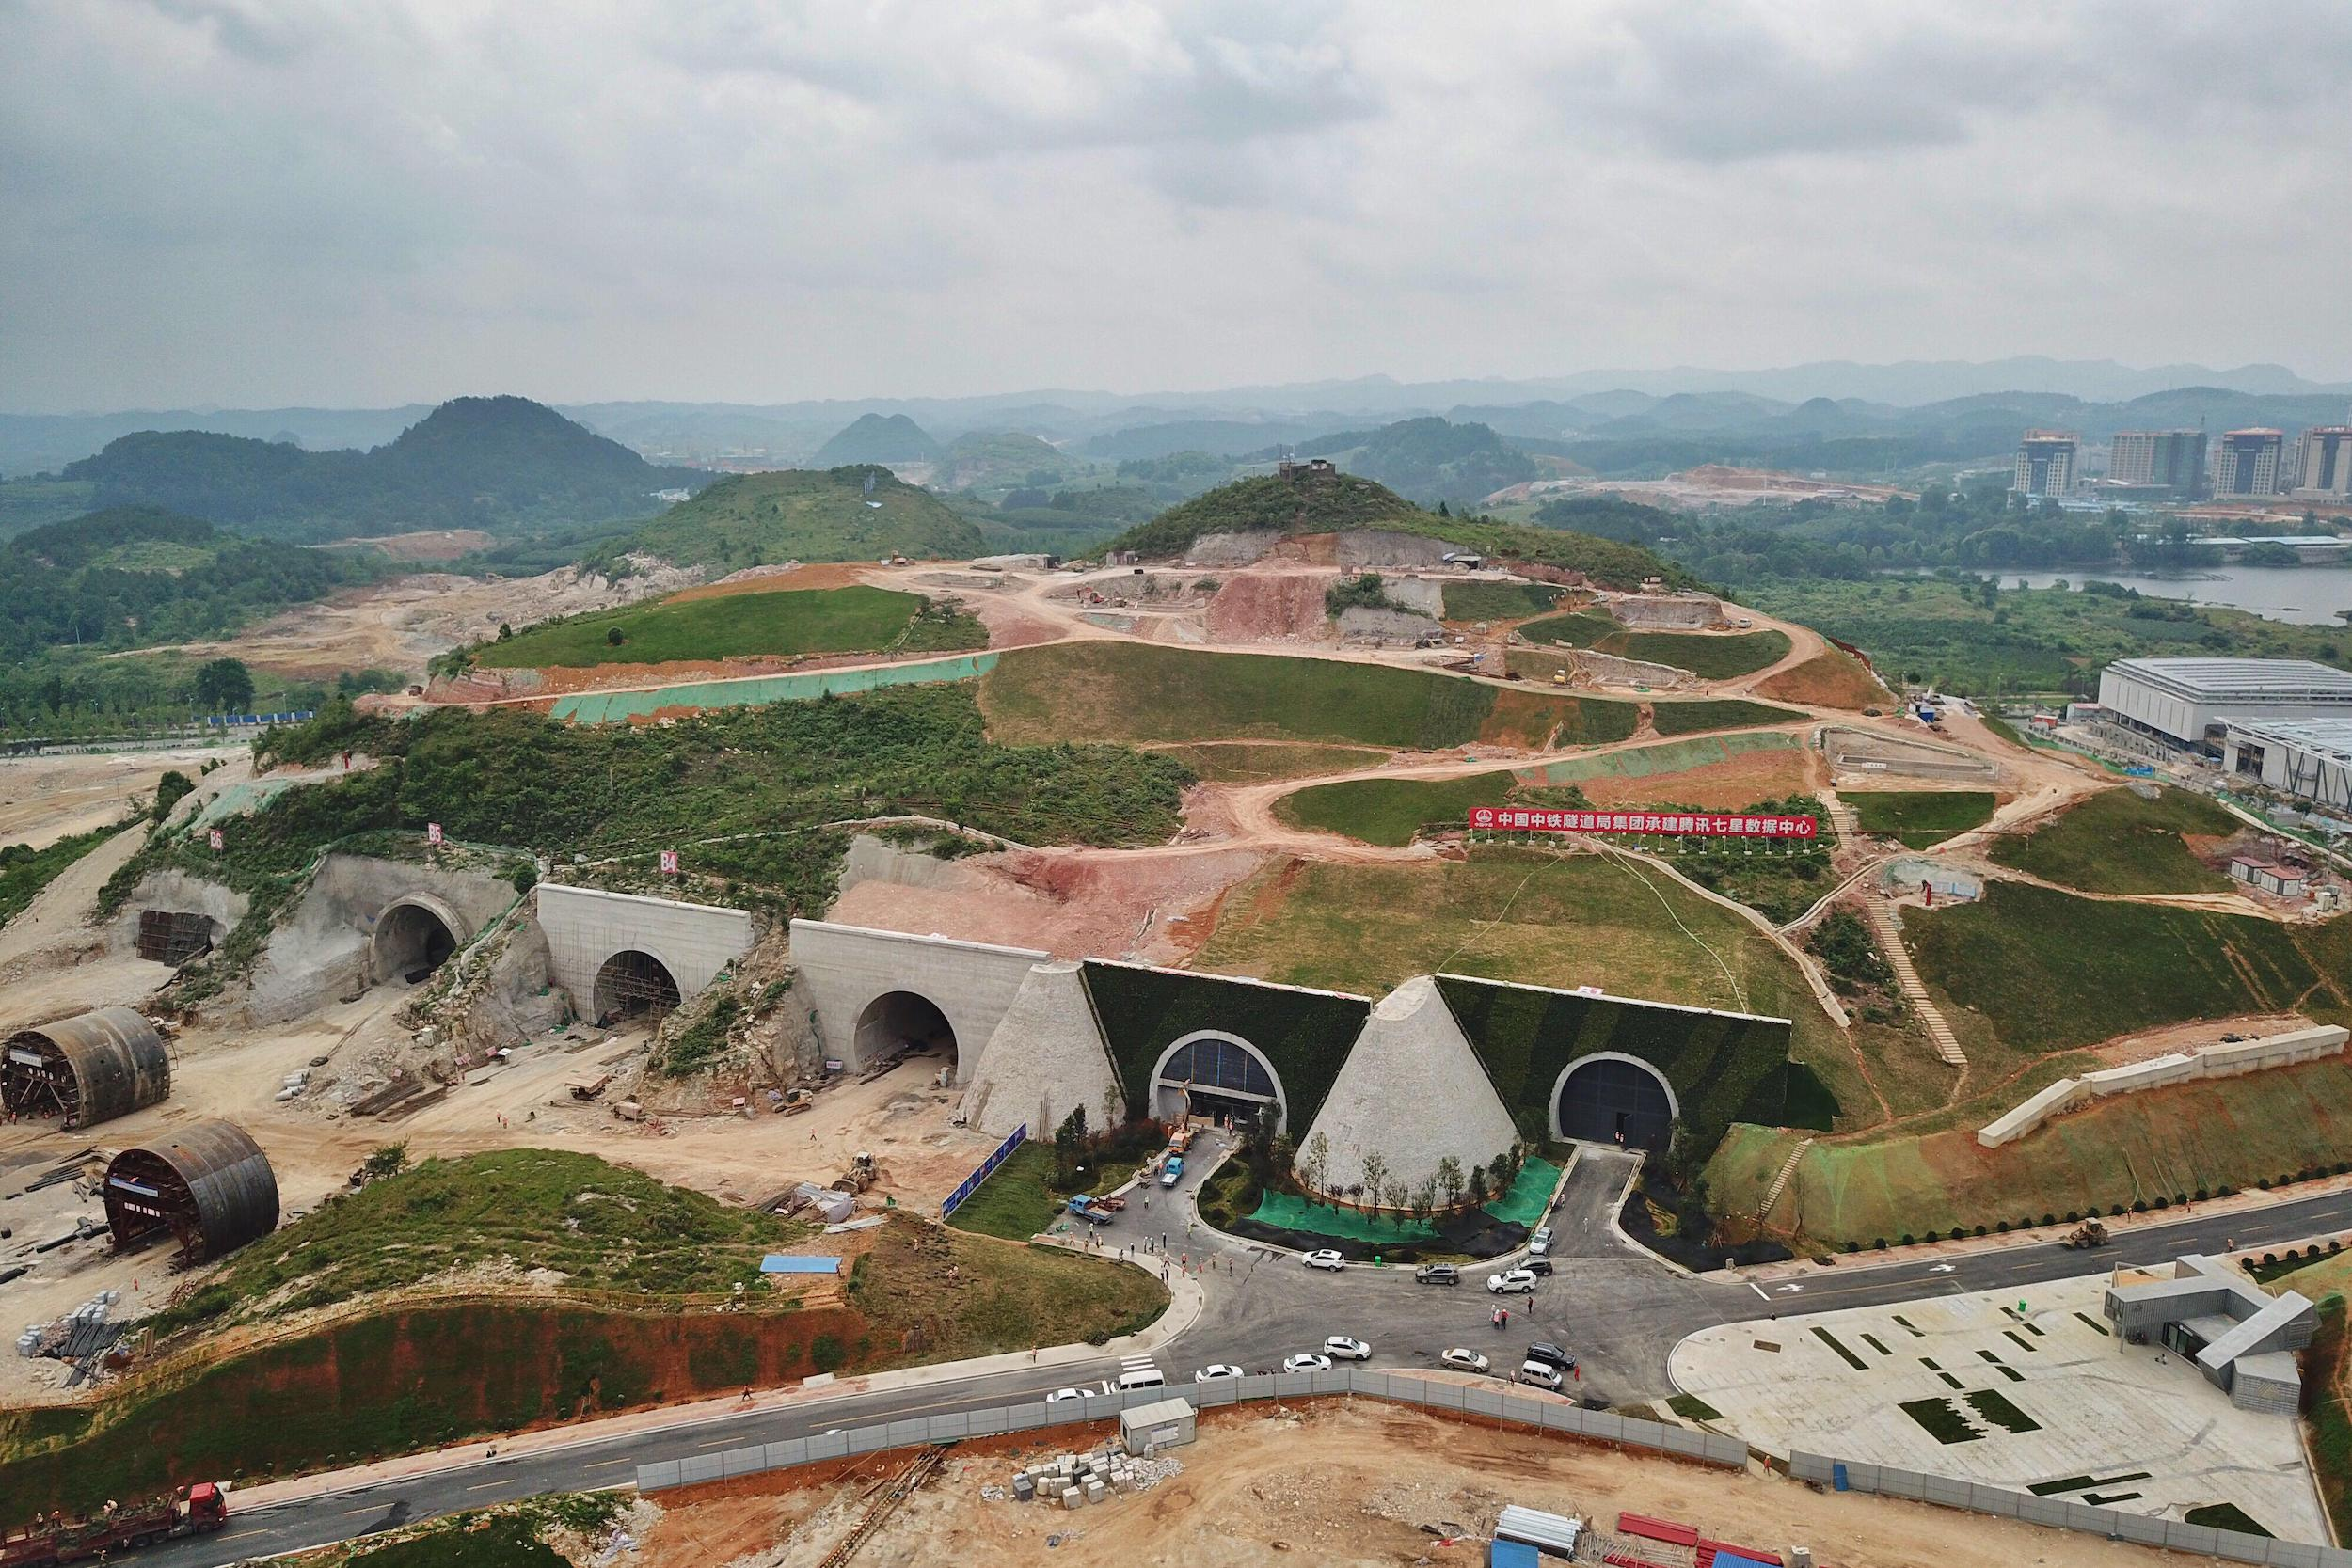 Construction of a Tencent data centre in Guizhou province, southwest China